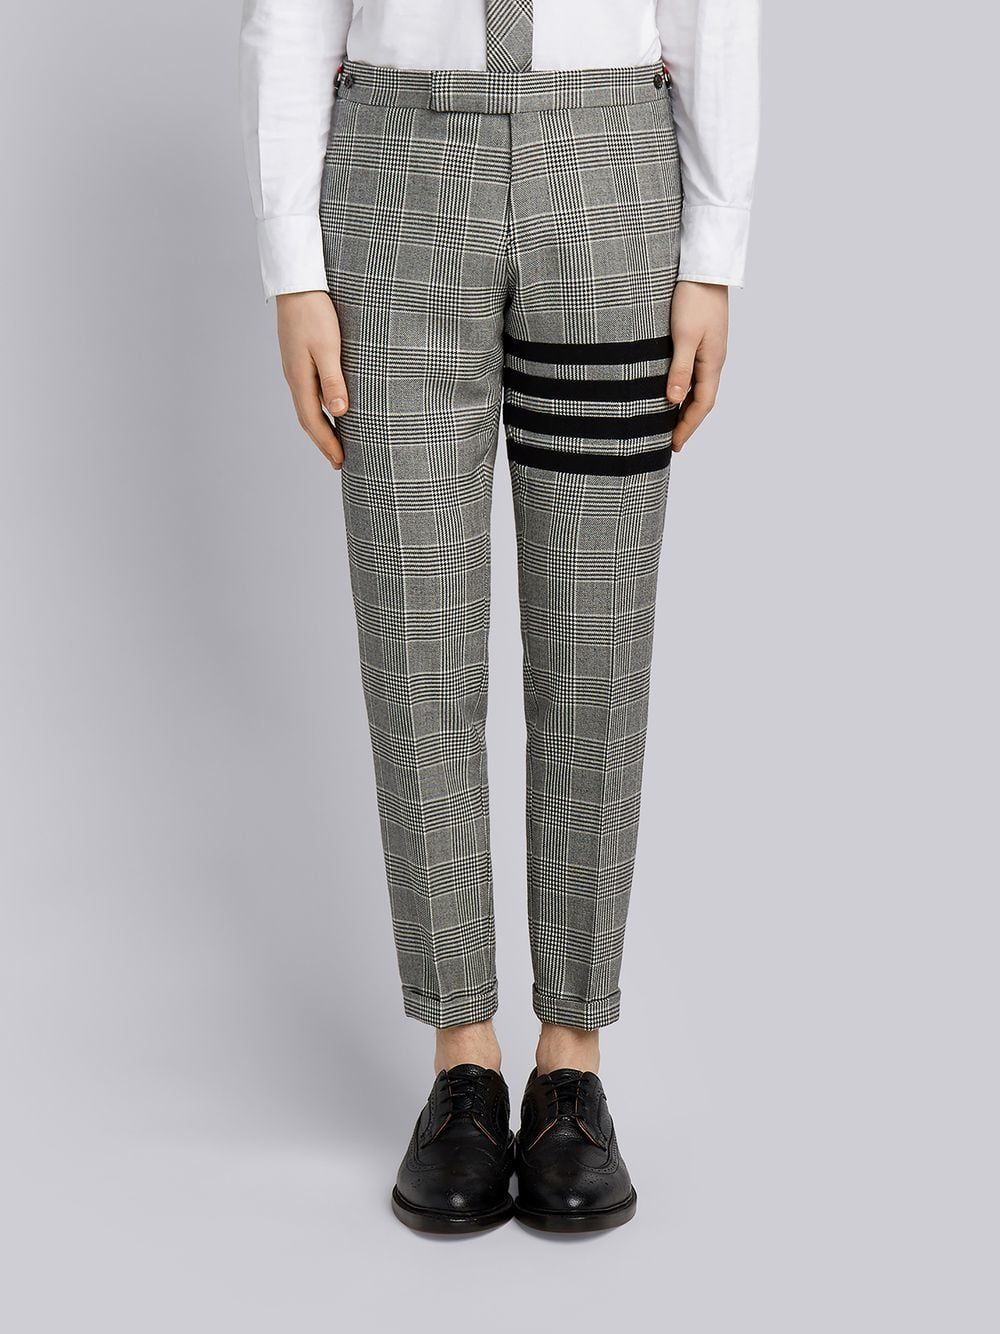 7d3e8f709a29 THOM BROWNE THOM BROWNE 4-BAR PRINCE OF WALES HEAVY WOOL TROUSER.   thombrowne  cloth